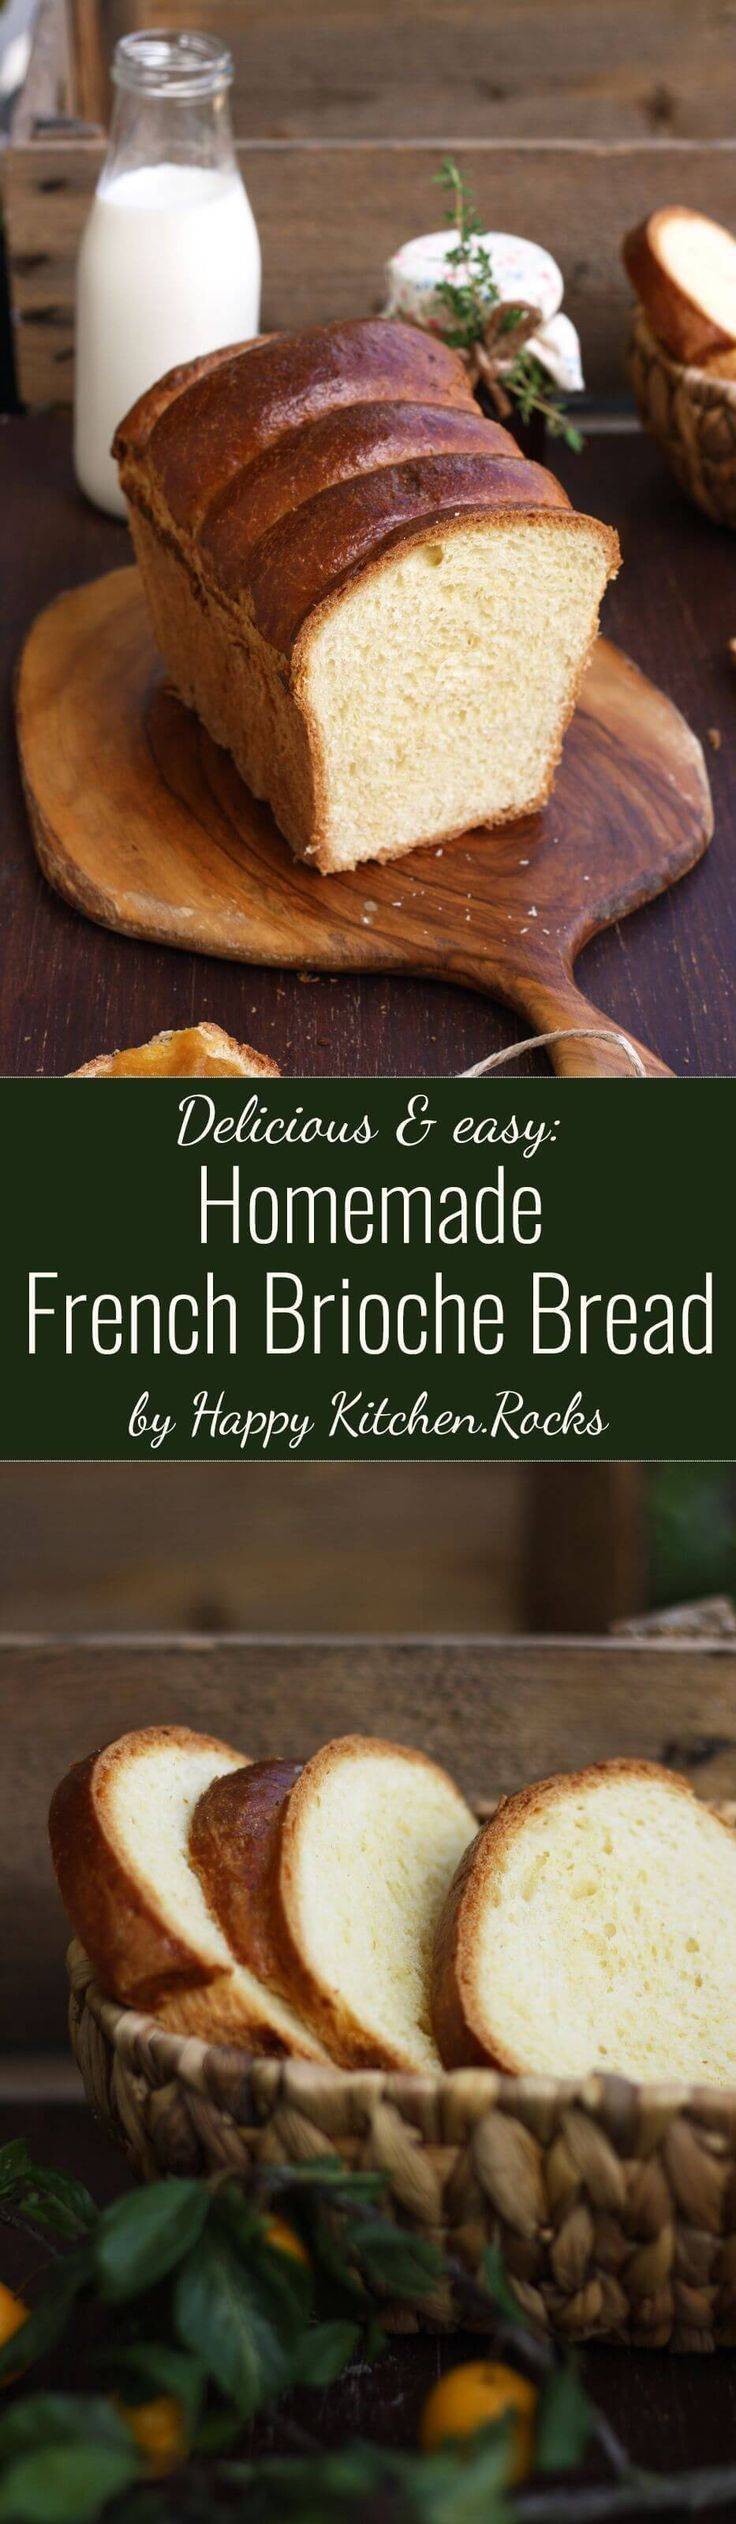 This easy 7-ingredient homemade French brioche bread recipe makes a puffy, tender and delicious loaf, perfect for breakfast or brunch, topped with your favorite jam!